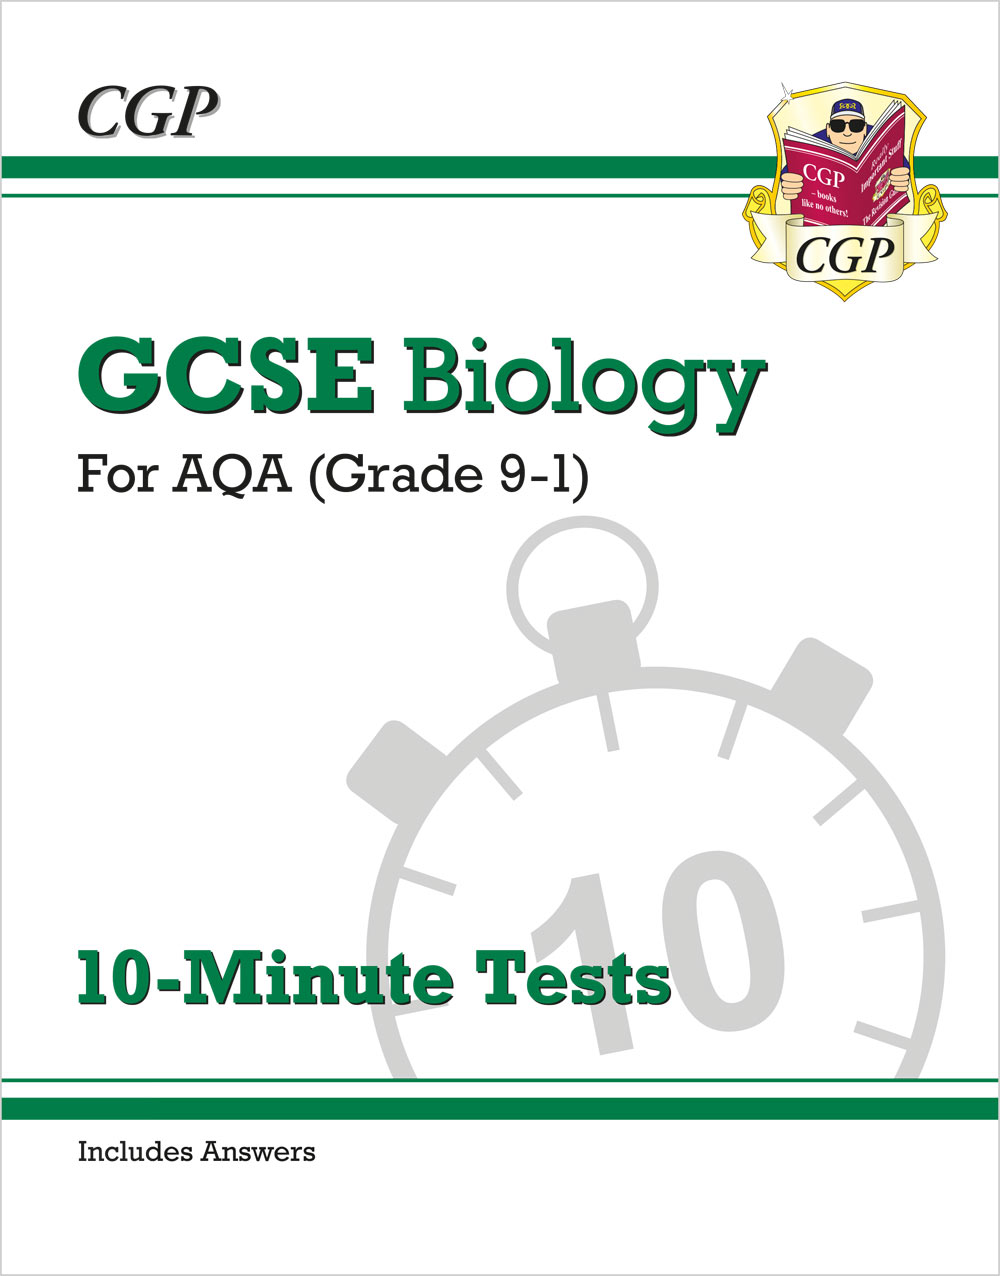 BAXP42 - Grade 9-1 GCSE Biology: AQA 10-Minute Tests (with answers)